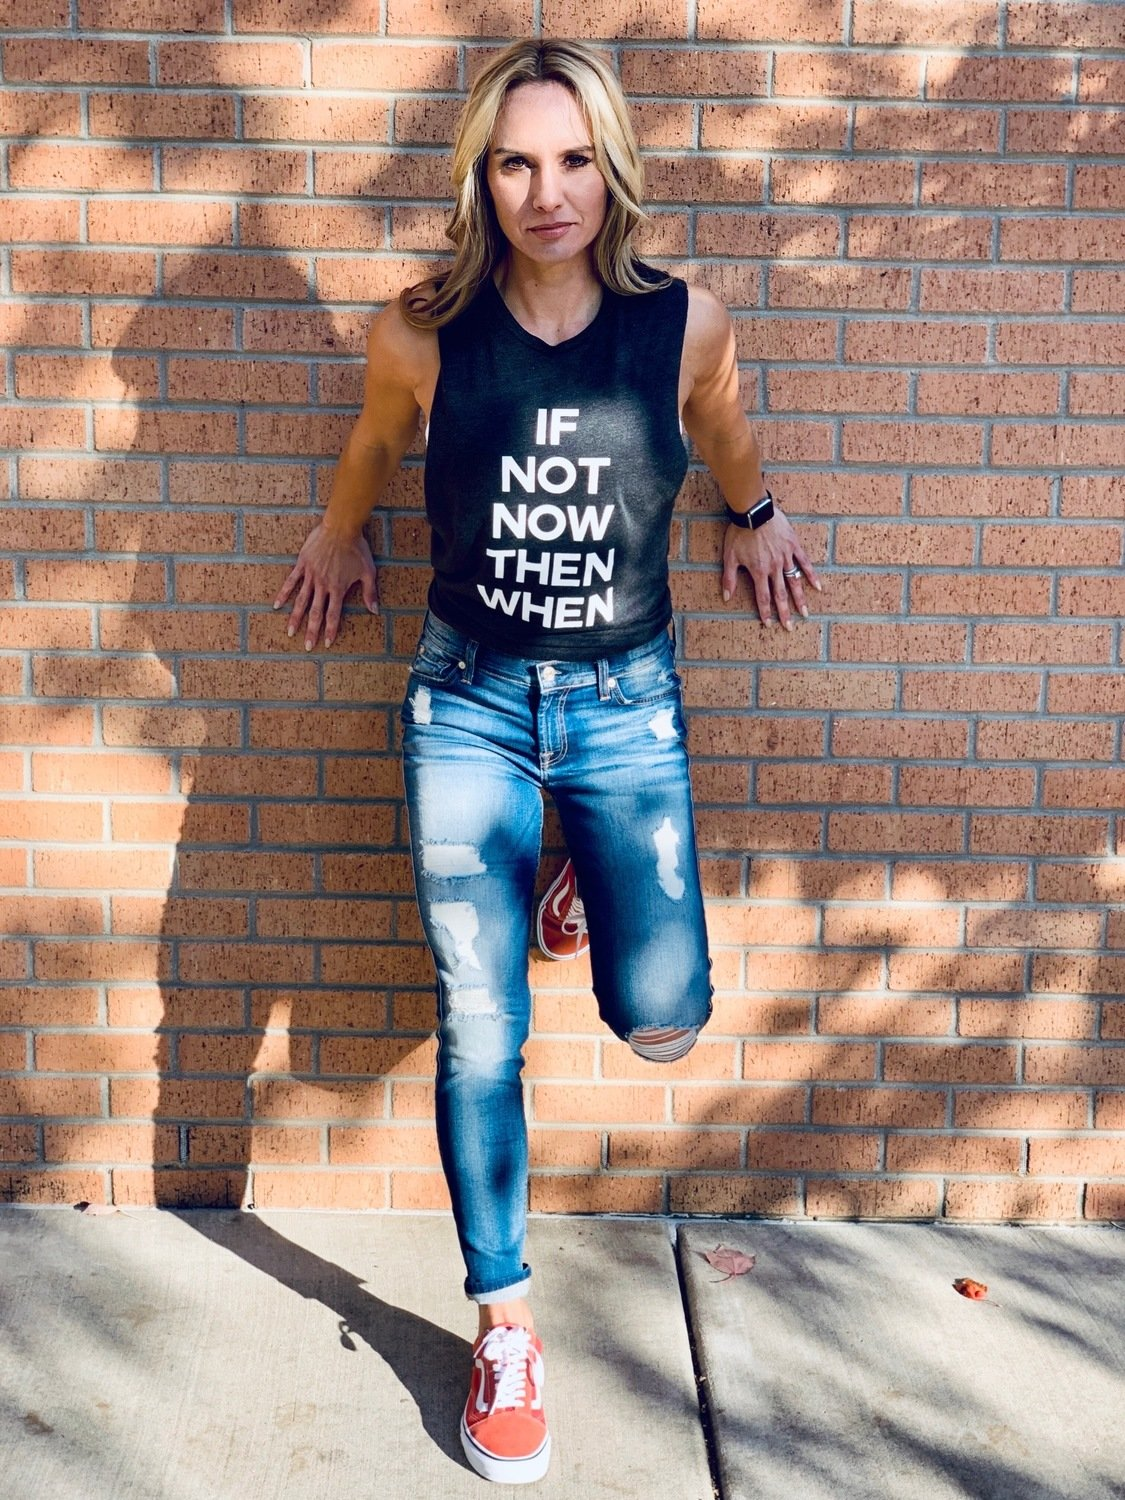 IF NOT NOW THEN WHEN Crewneck Boyfriend Muscle Lounge Tank